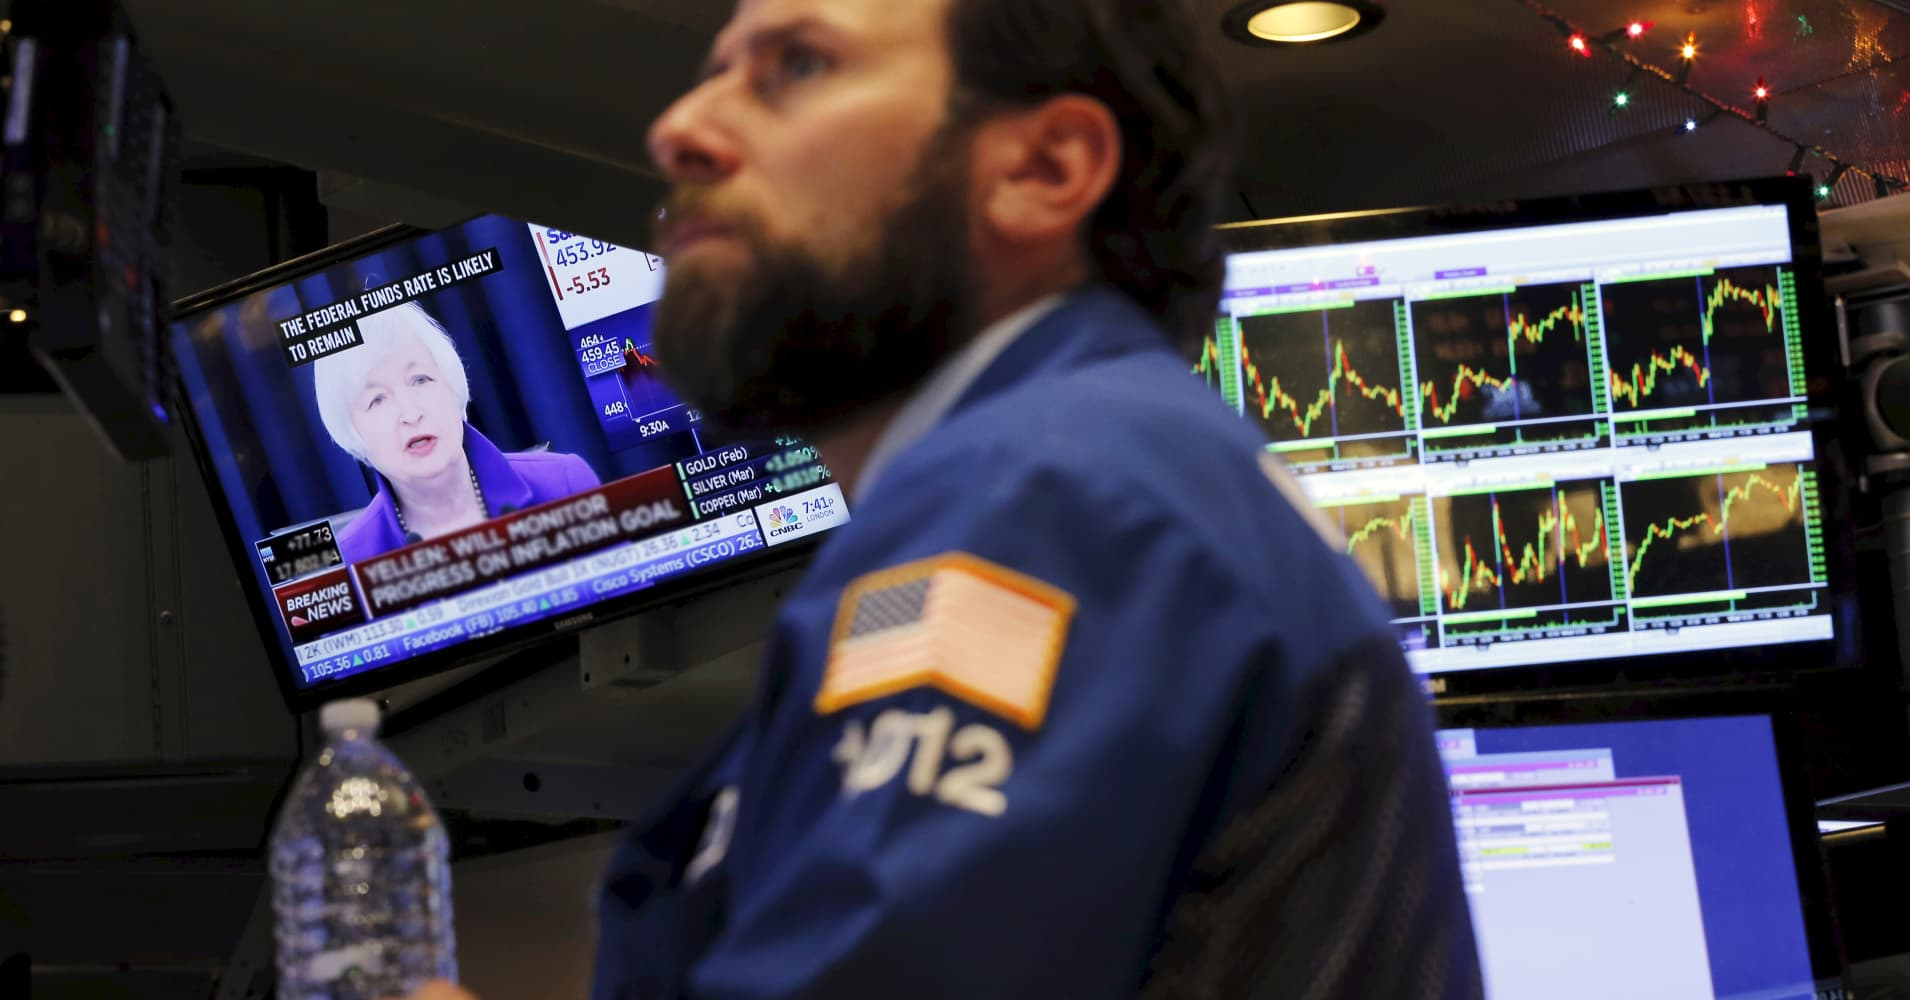 A trader works on the floor of the New York Stock Exchange as Janet Yellen holds a press conference on Dec. 16, 2015.